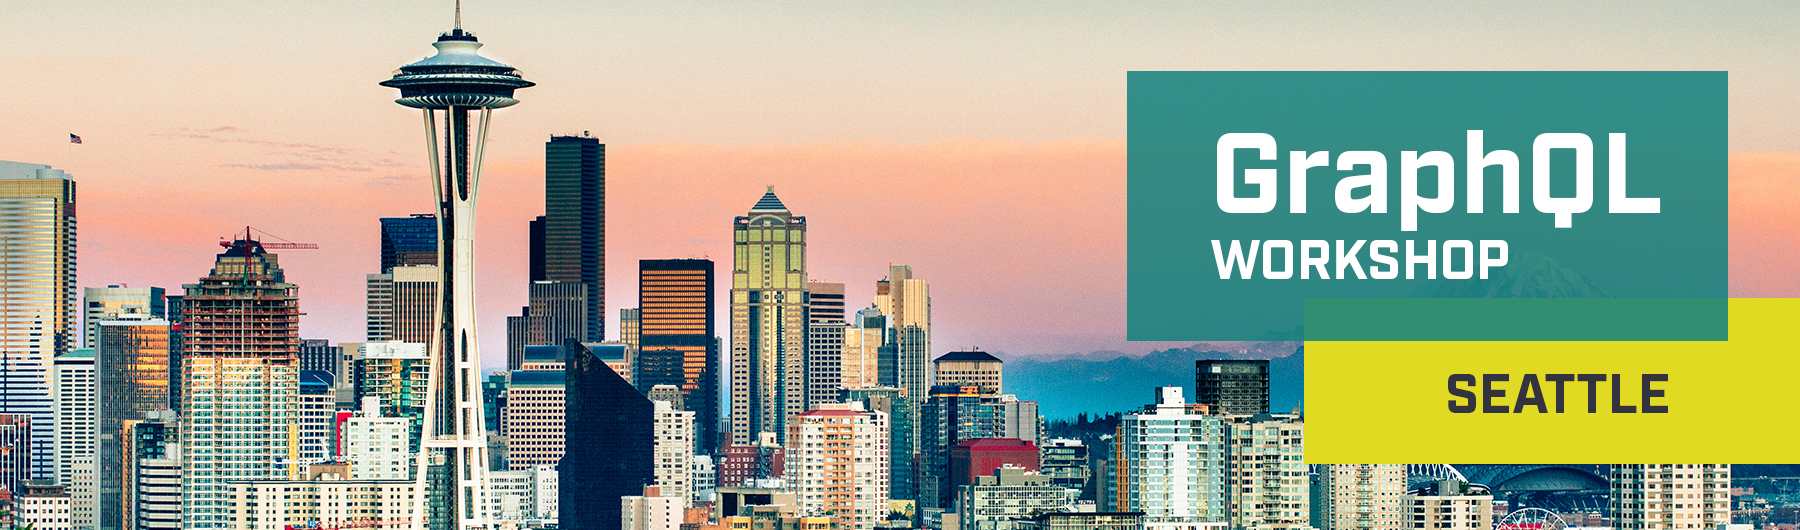 GraphQL Workshop in Seattle